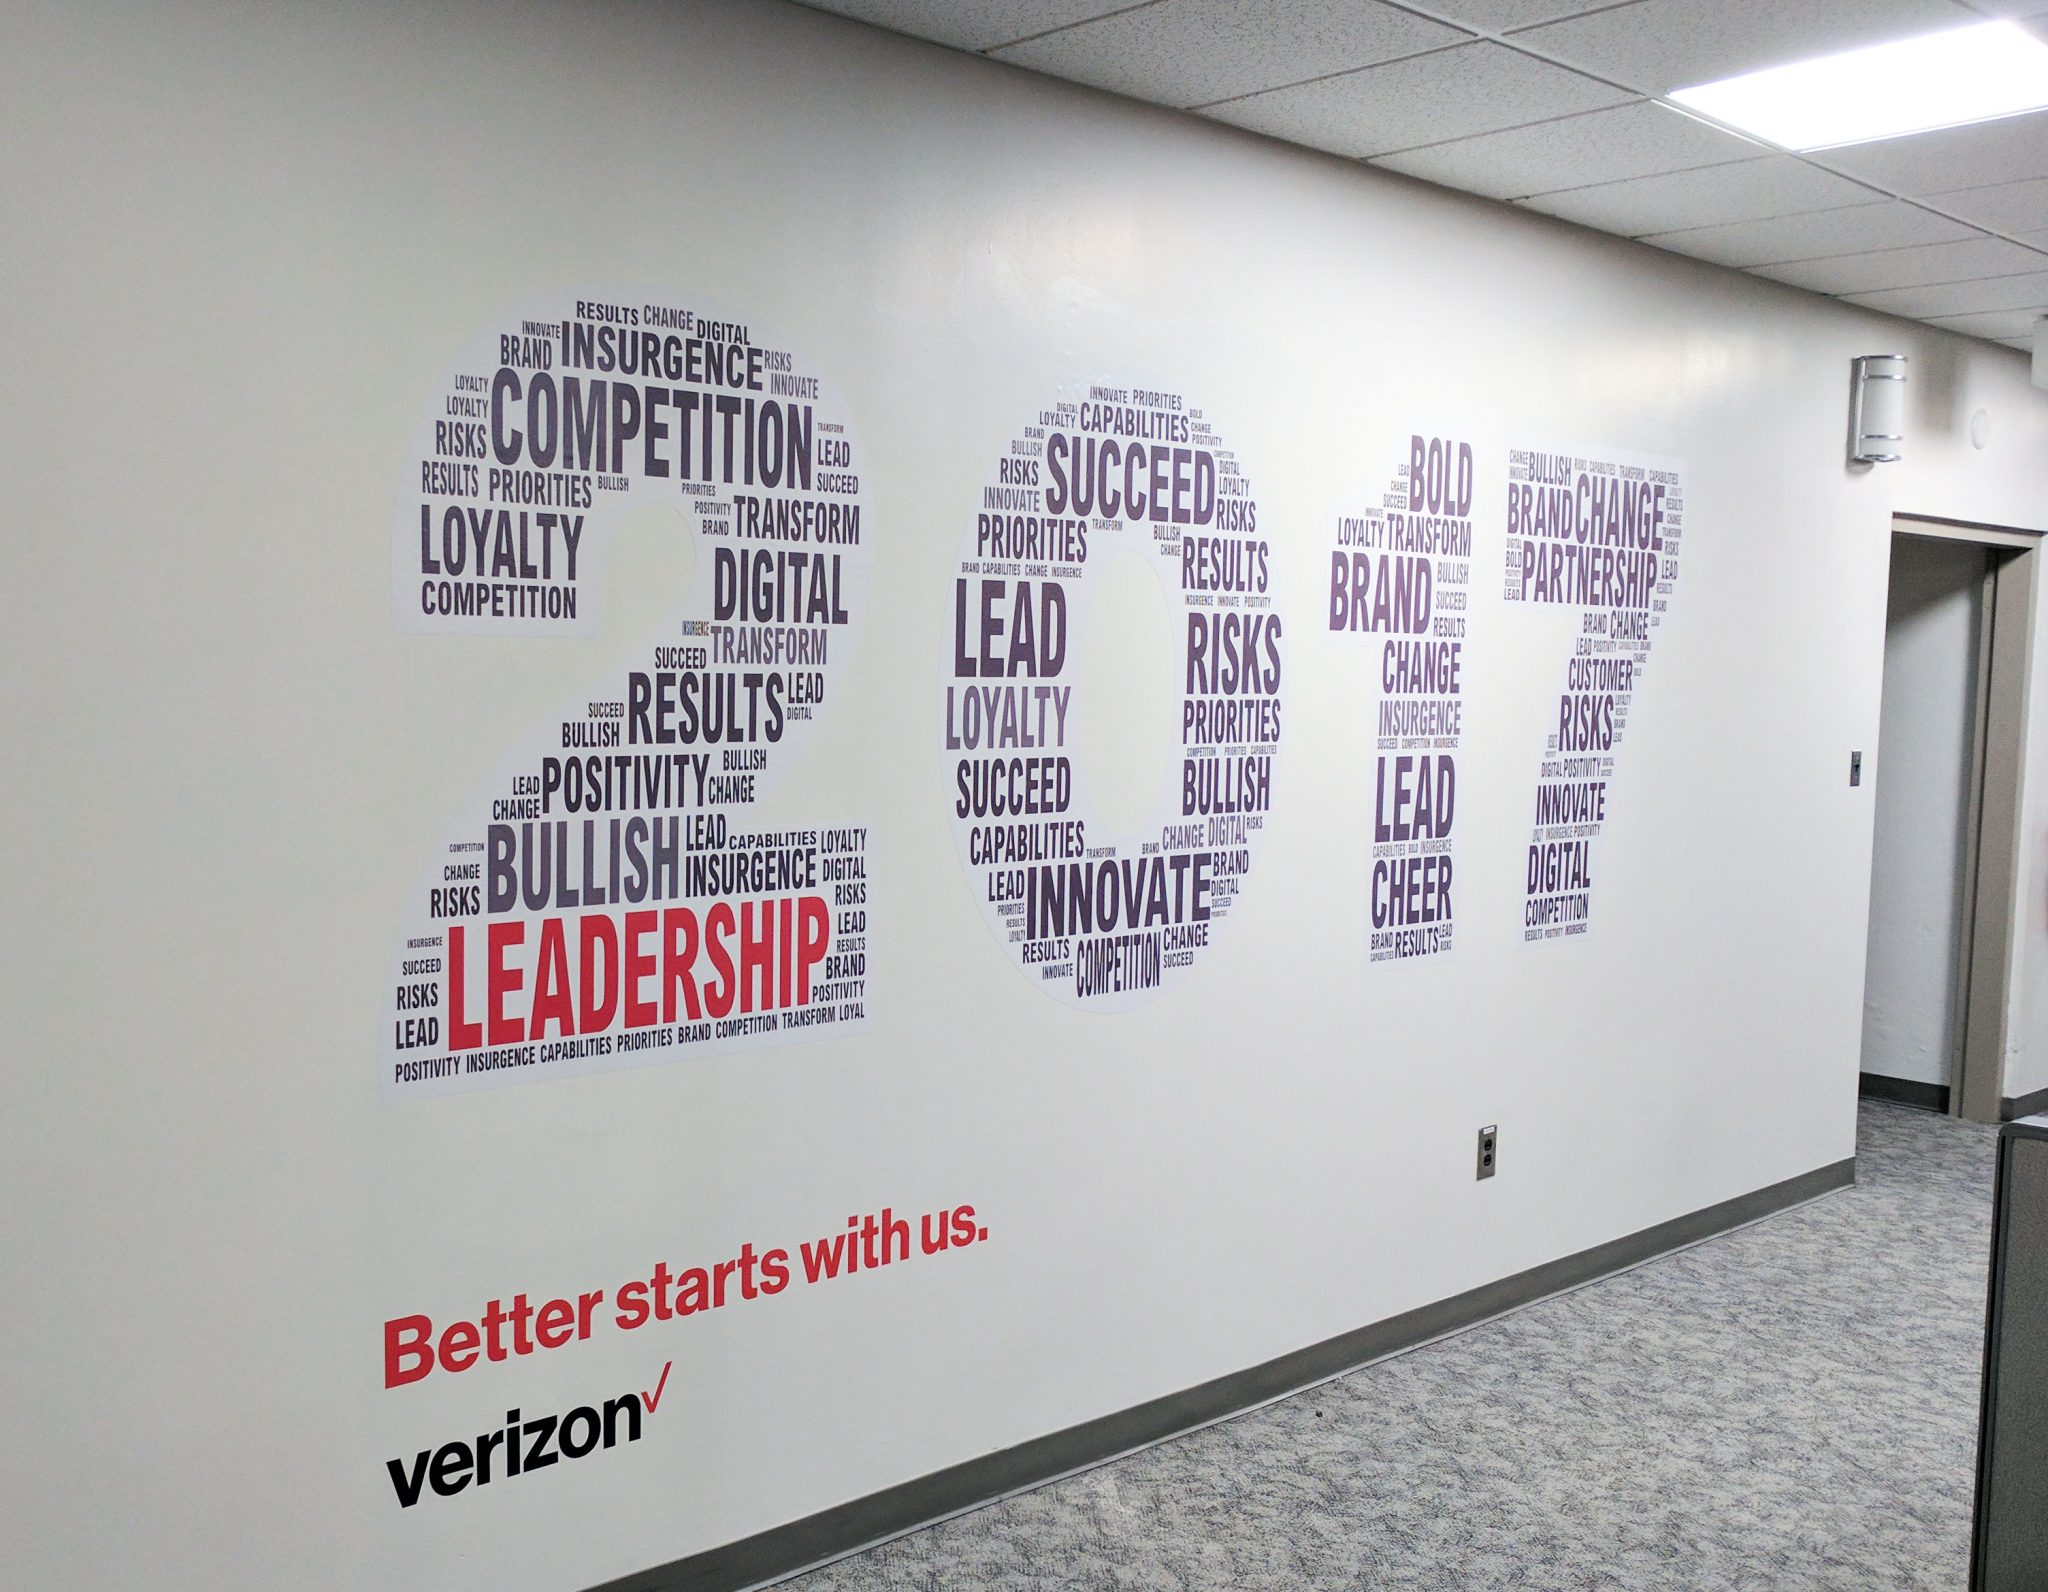 Verizon Philadelphia 2017 Wall Graphic